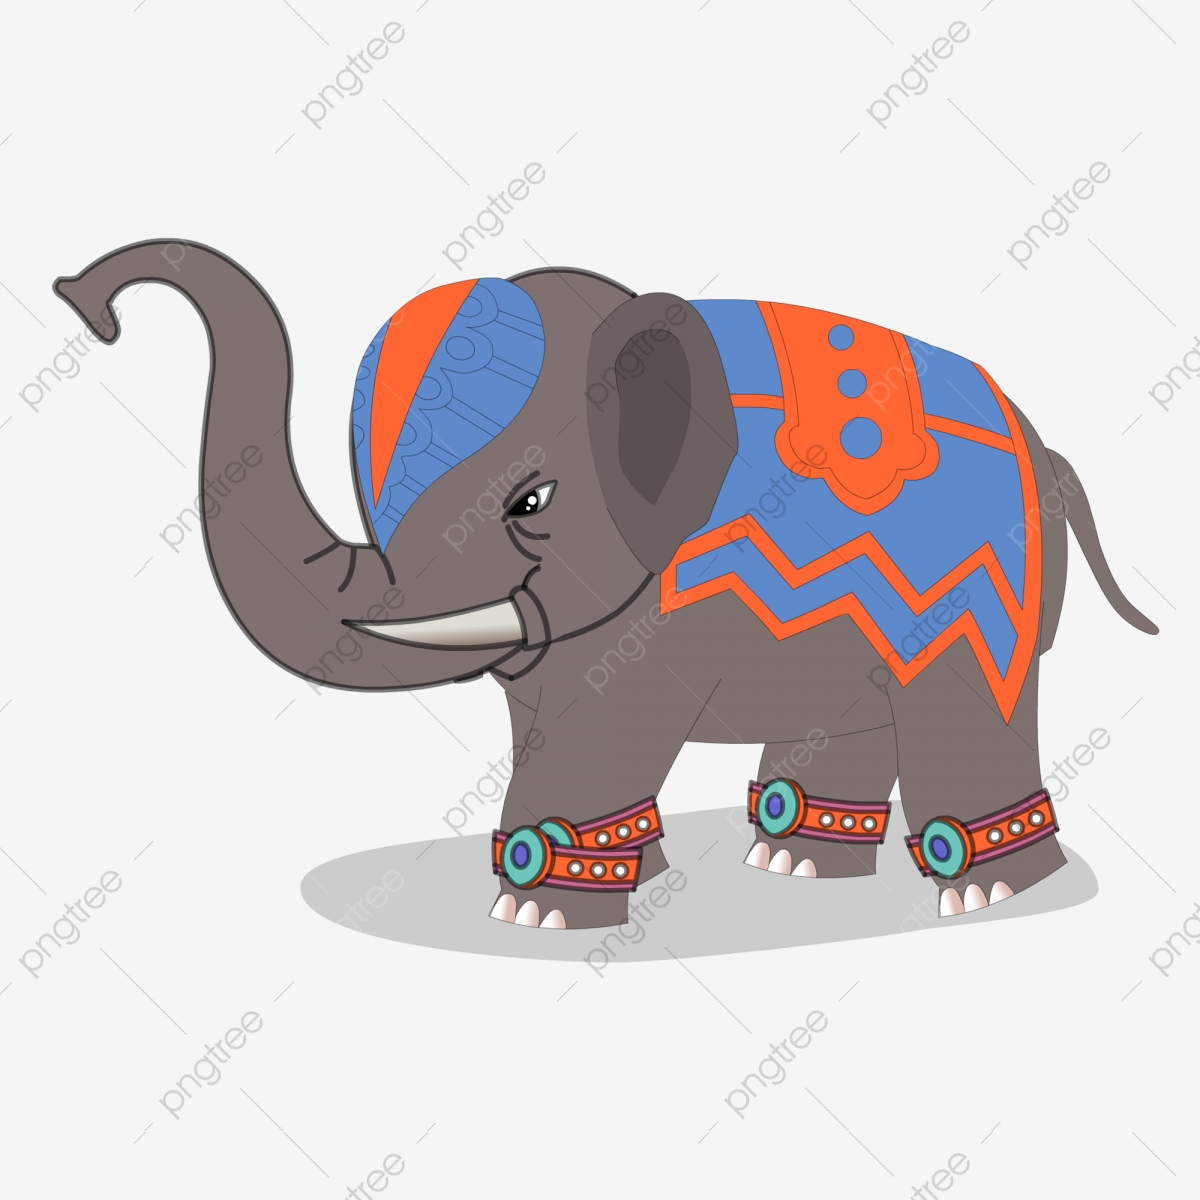 Cartoon Elephant Thailand Animal Elephant Clipart Travel Abroad Royal Elephant Png And Vector With Transparent Background For Free Download